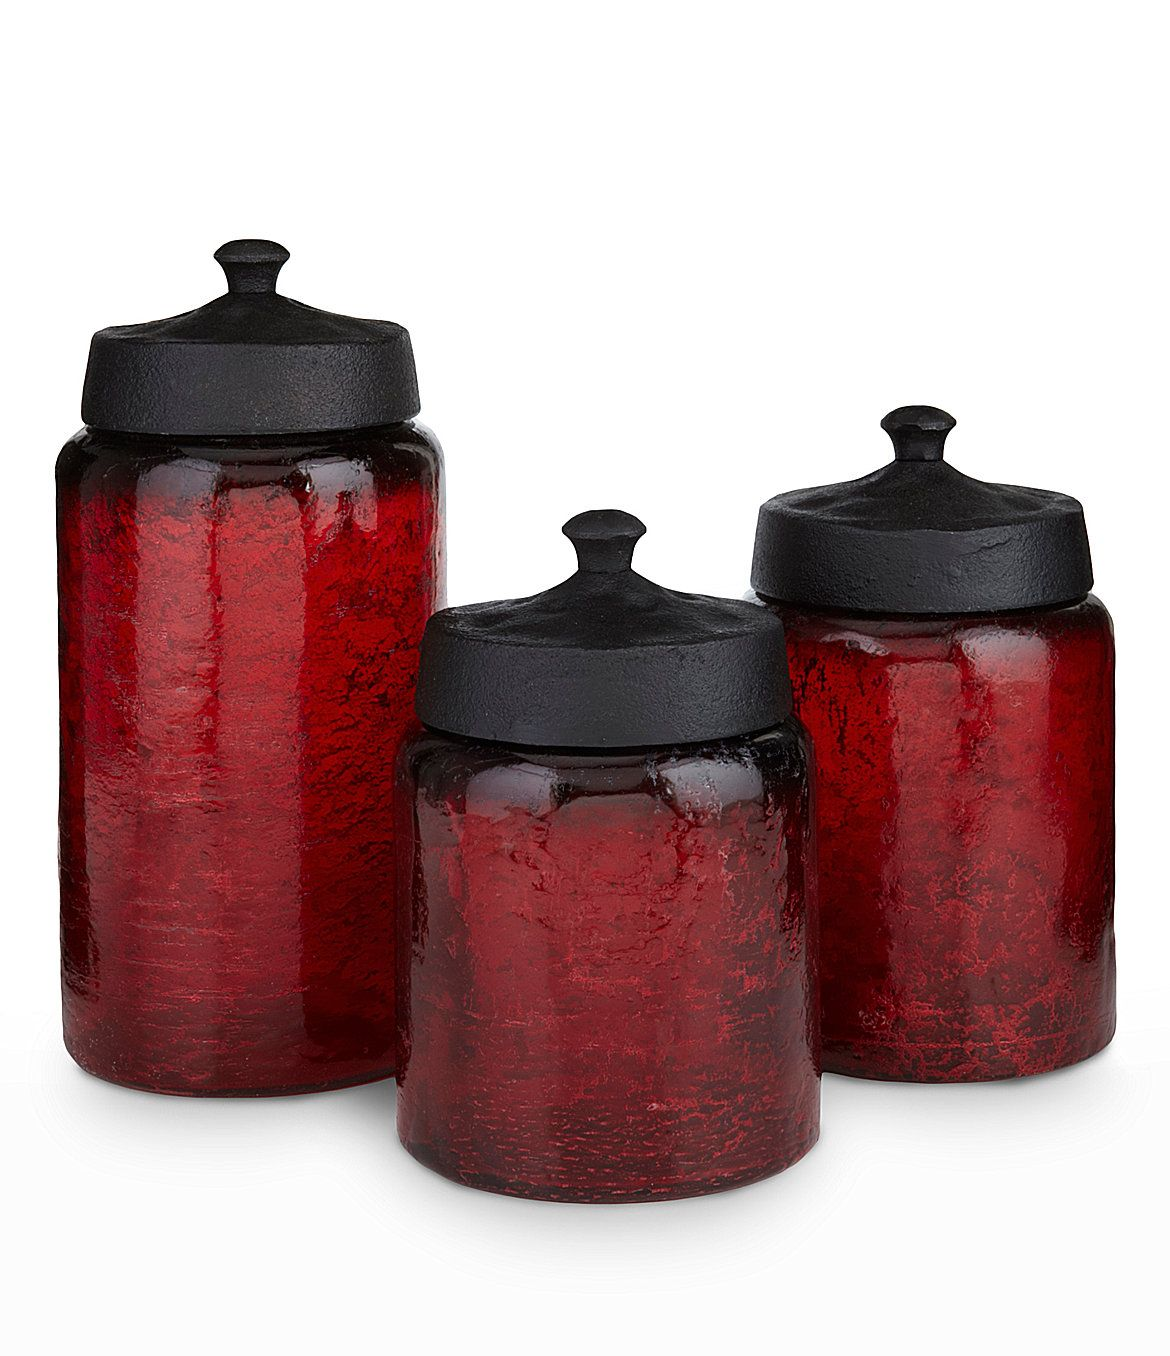 kitchen glass canisters with lids artimino red glass canisters with metal lid a house pinterest glass canisters metals and 5313